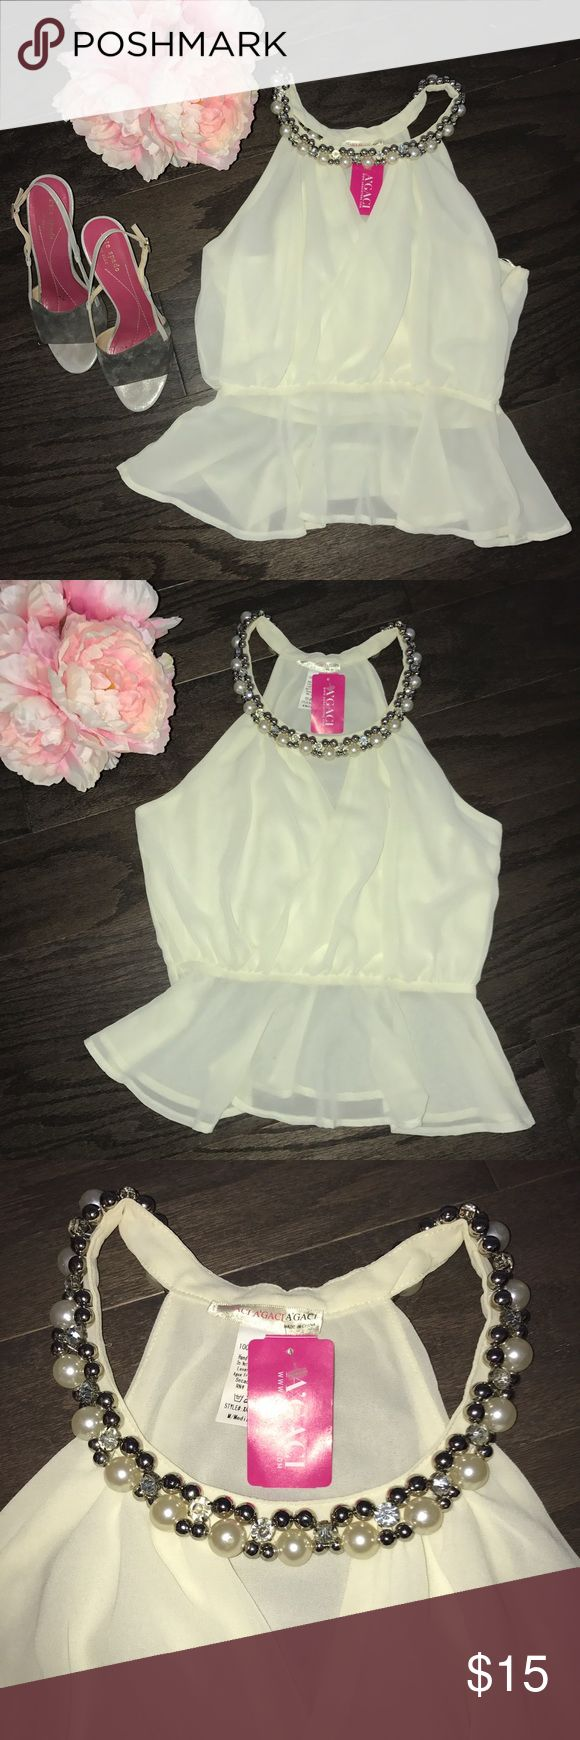 A'gaci ivory top accented with pearls and jewel New with tags, gorgeous ivory dressy top accented with pearls and jewels. Size small. I just took it out of storage and it just has minor make up stain from trying this top on (see pic) I would wash and it will come out but I don't wanna remove the tag. Easy fix though a'gaci Tops Blouses